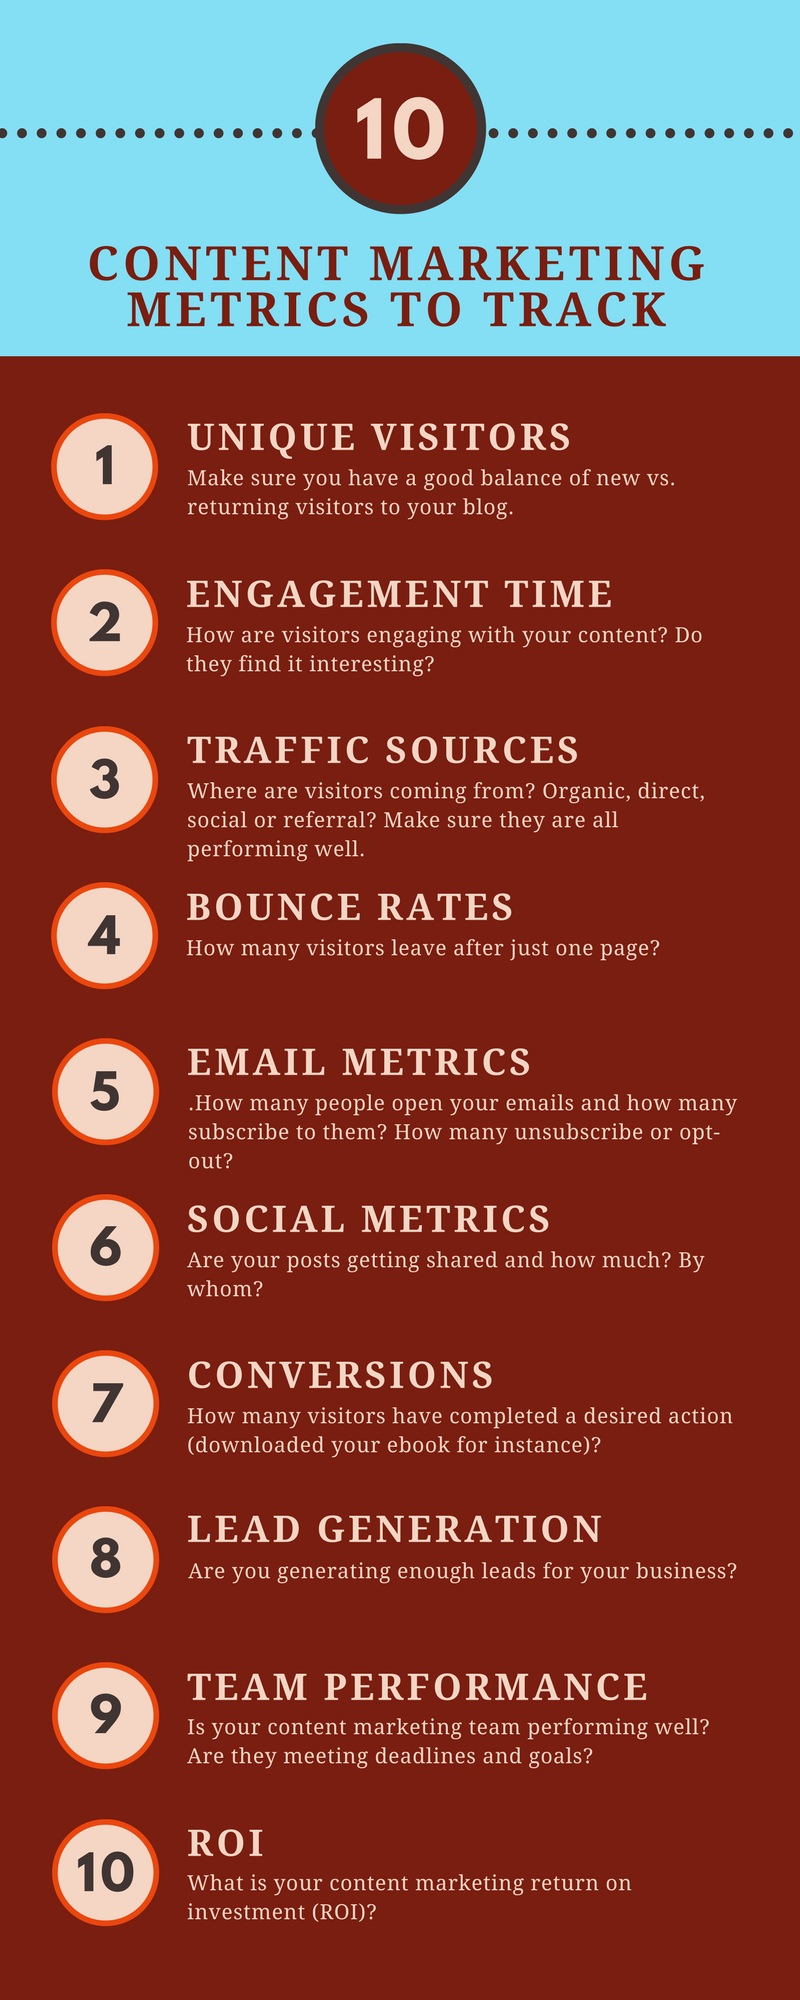 10 content marketing metrics infographic